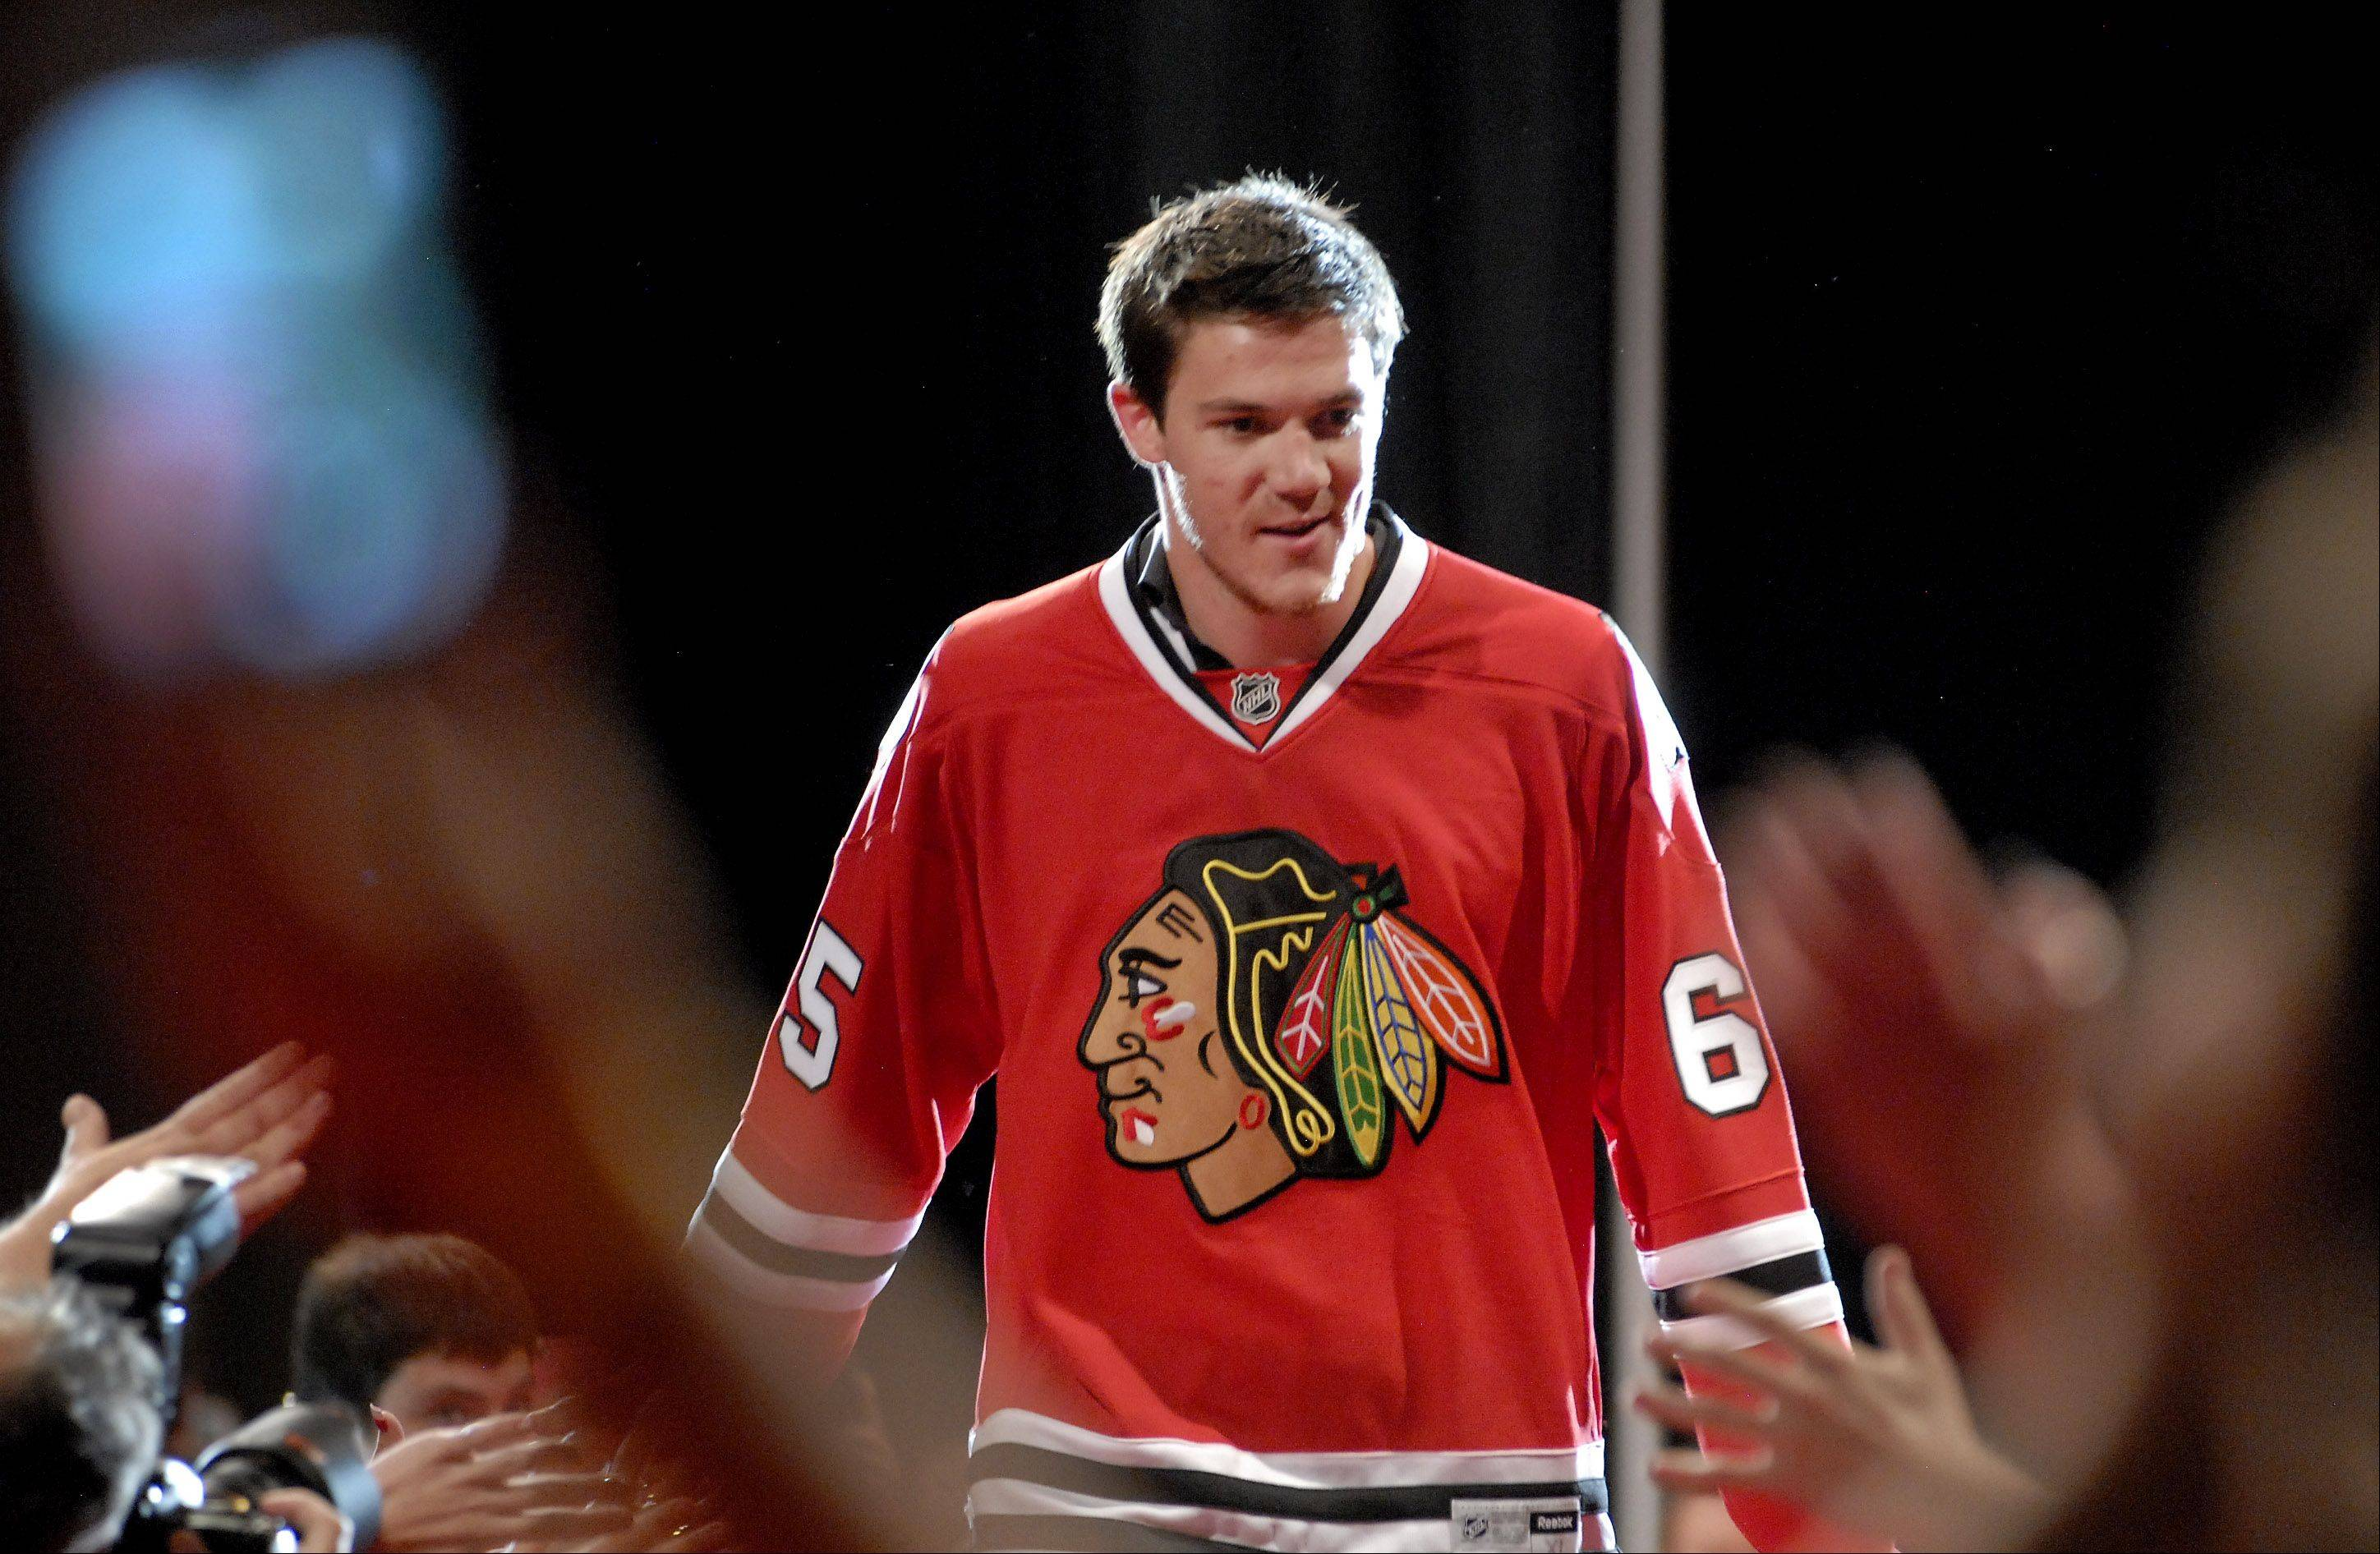 Andrew Shaw runs the gauntlet of fans.